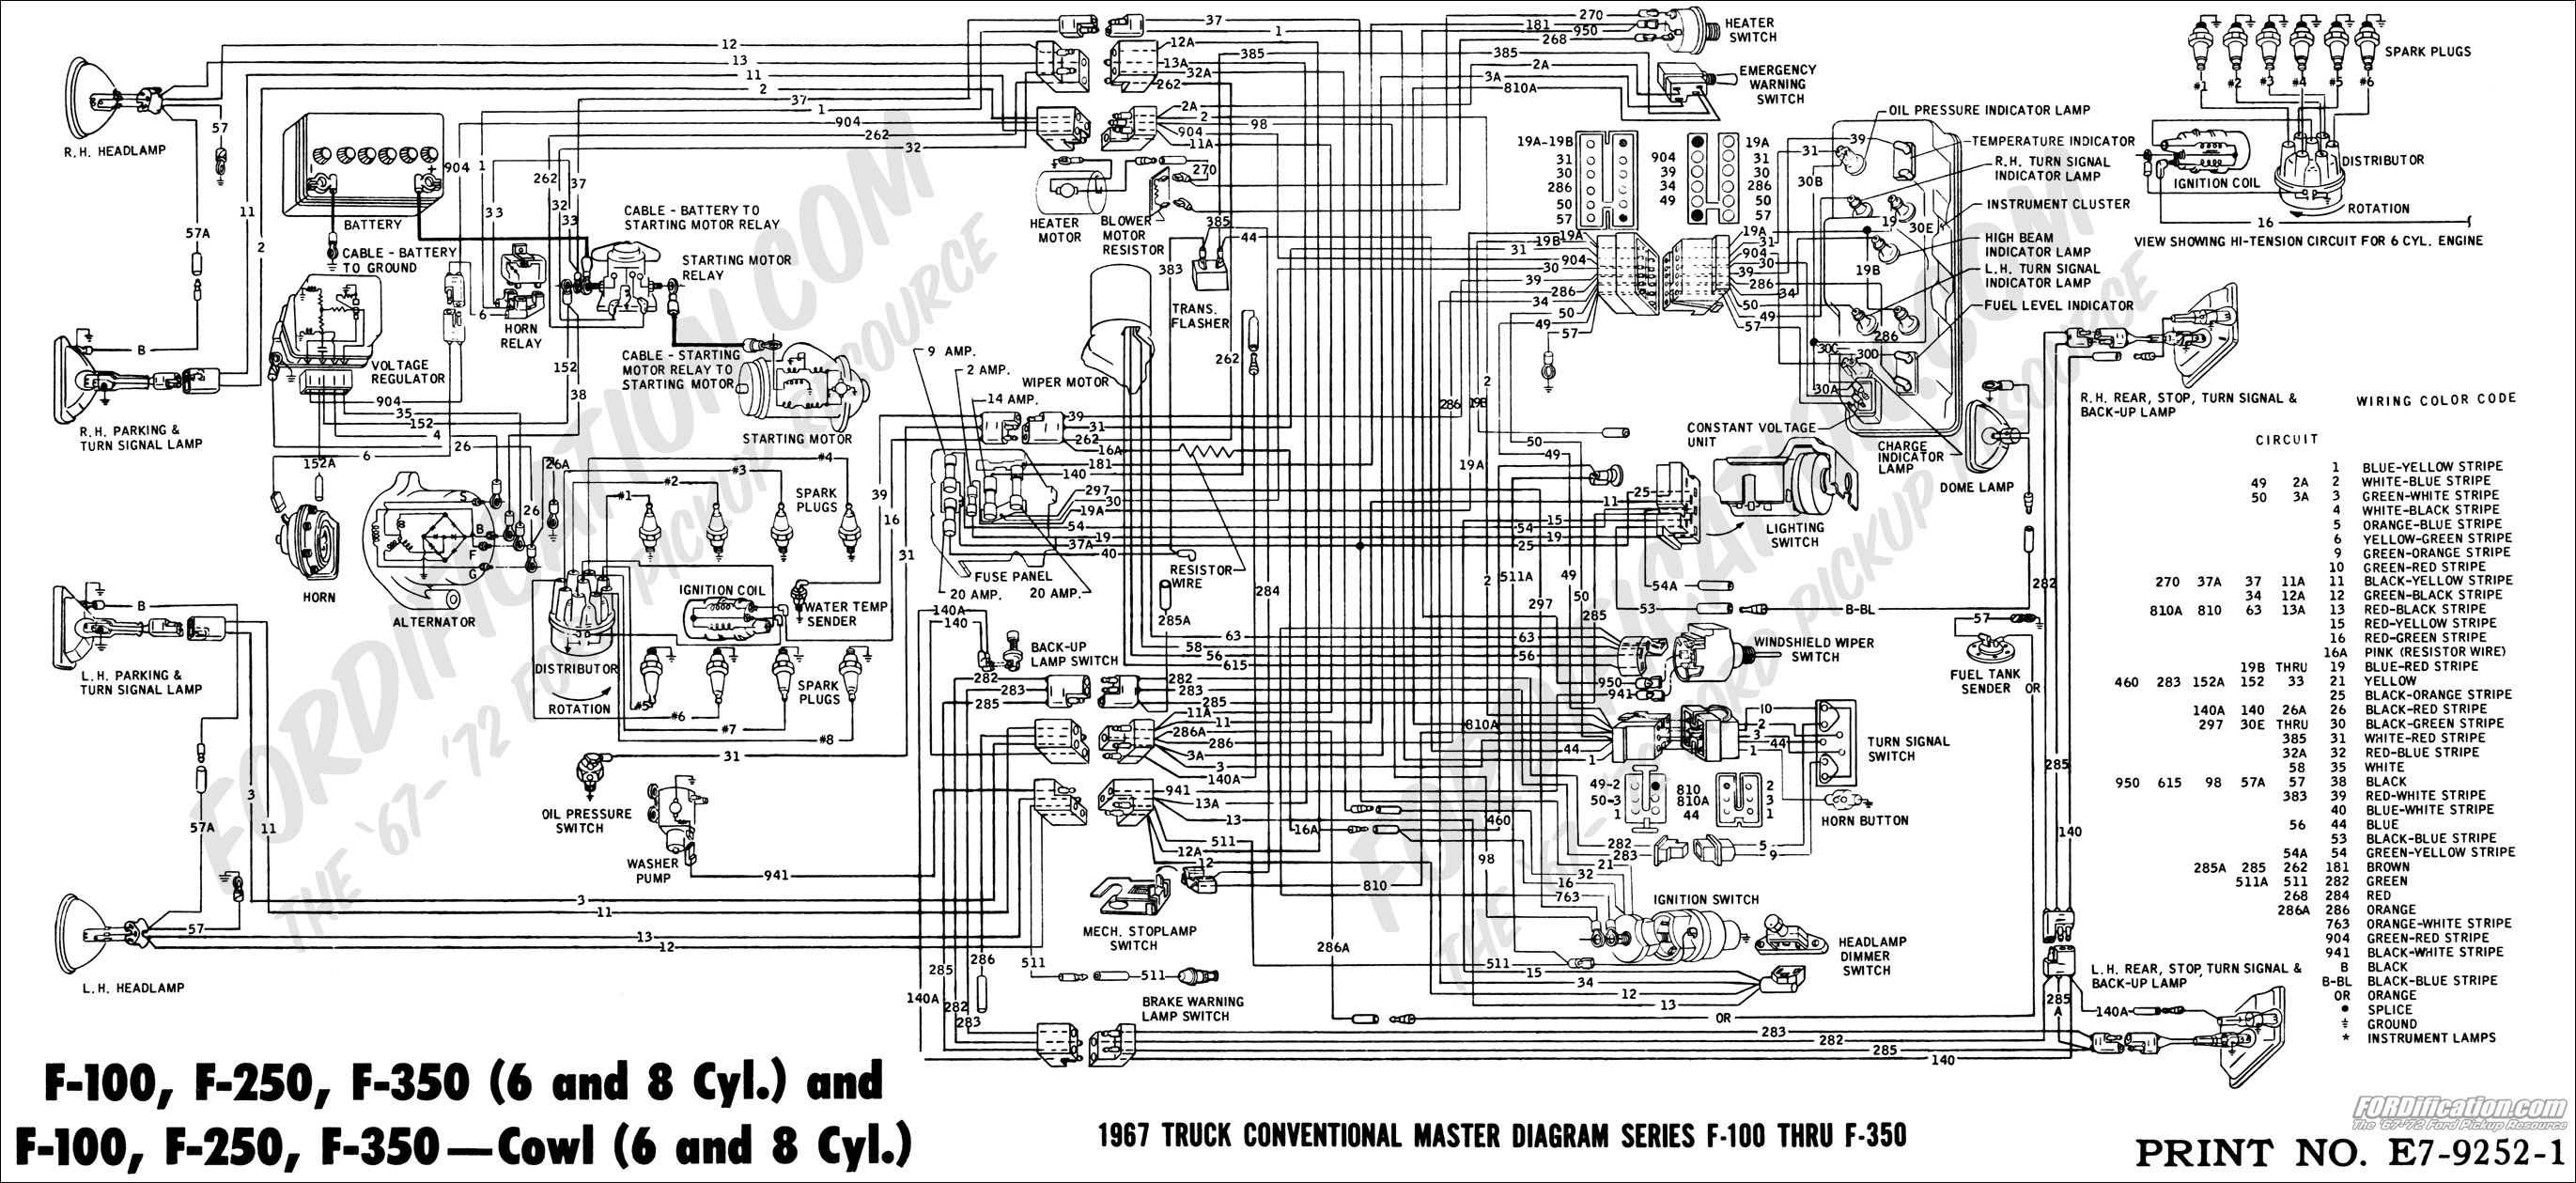 wiring diagram for 2000 ford f150 wiring diagram database98 f150 wiring diagram schema wiring diagram online wiring diagram for 1999 ford f150 wiring diagram for 2000 ford f150